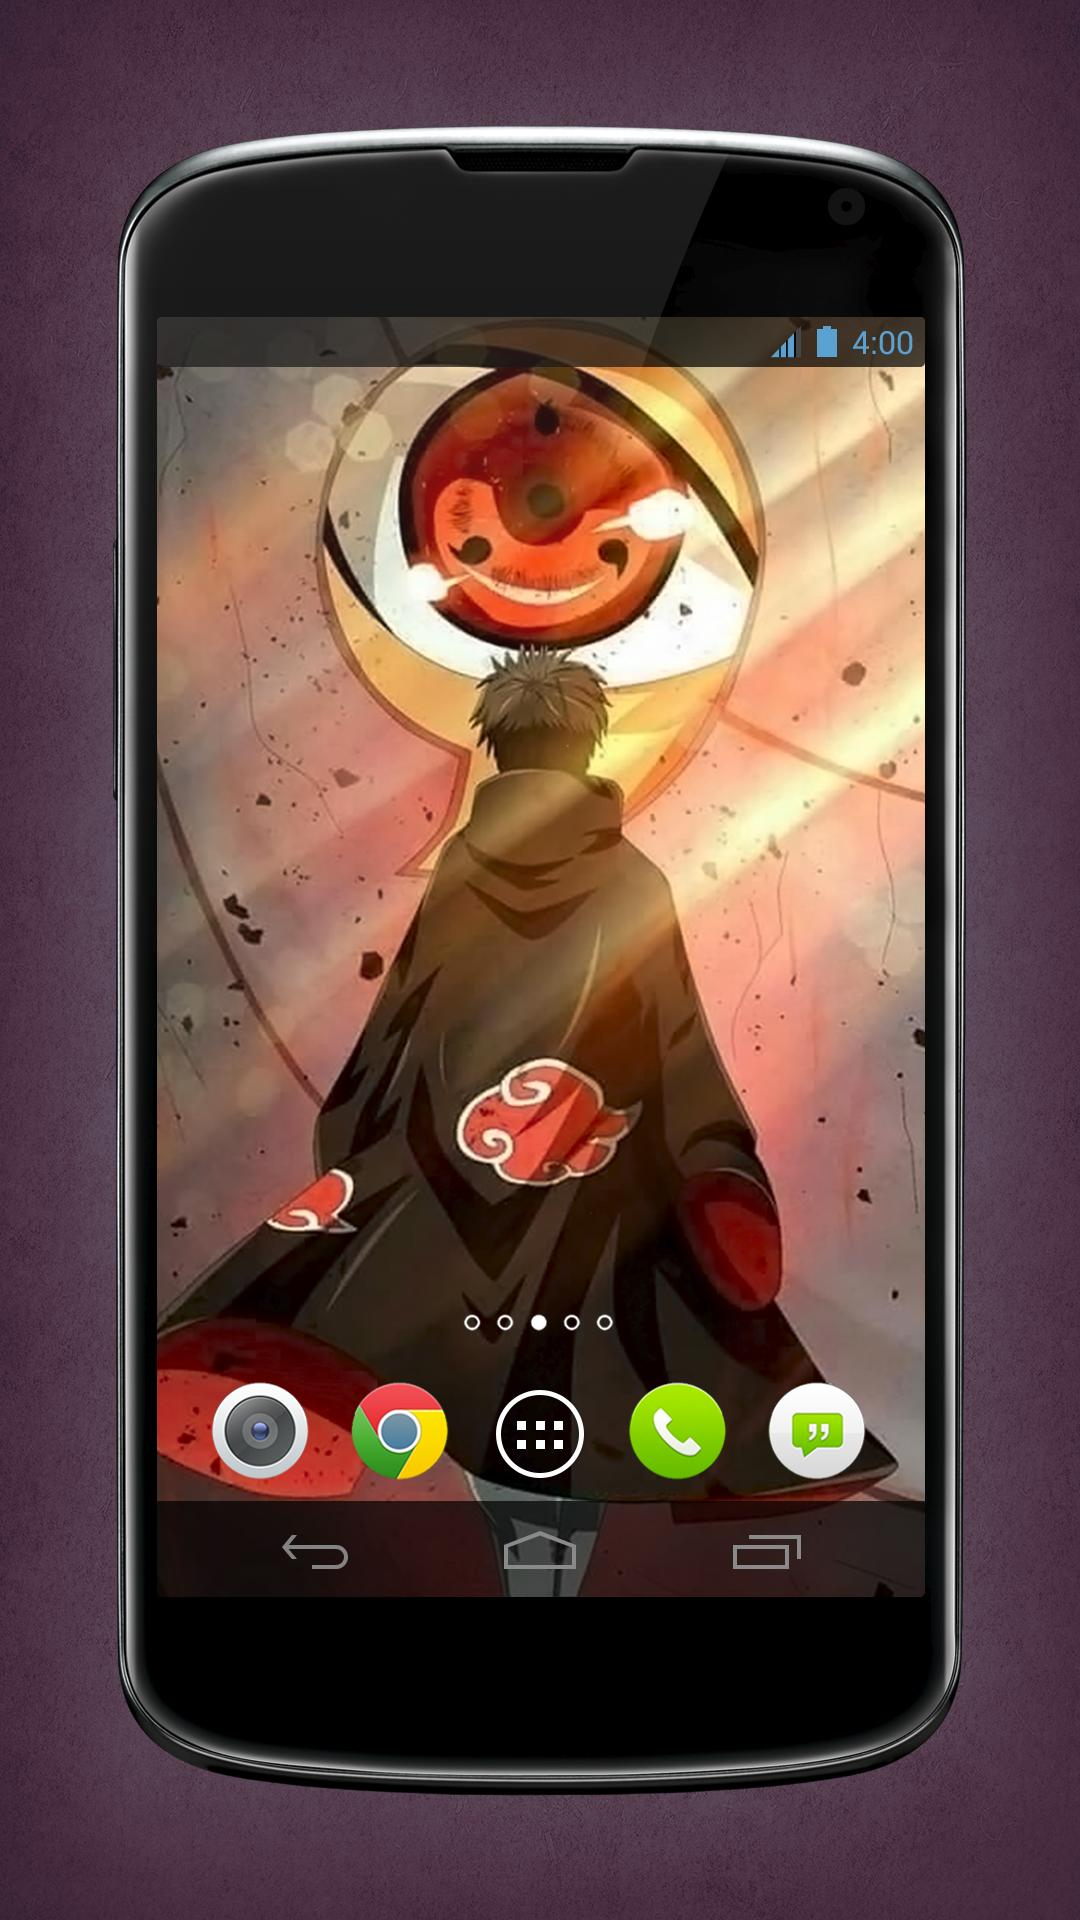 Tobi Obito Uchiha Anime Lock Screen & Wallpapers for Android